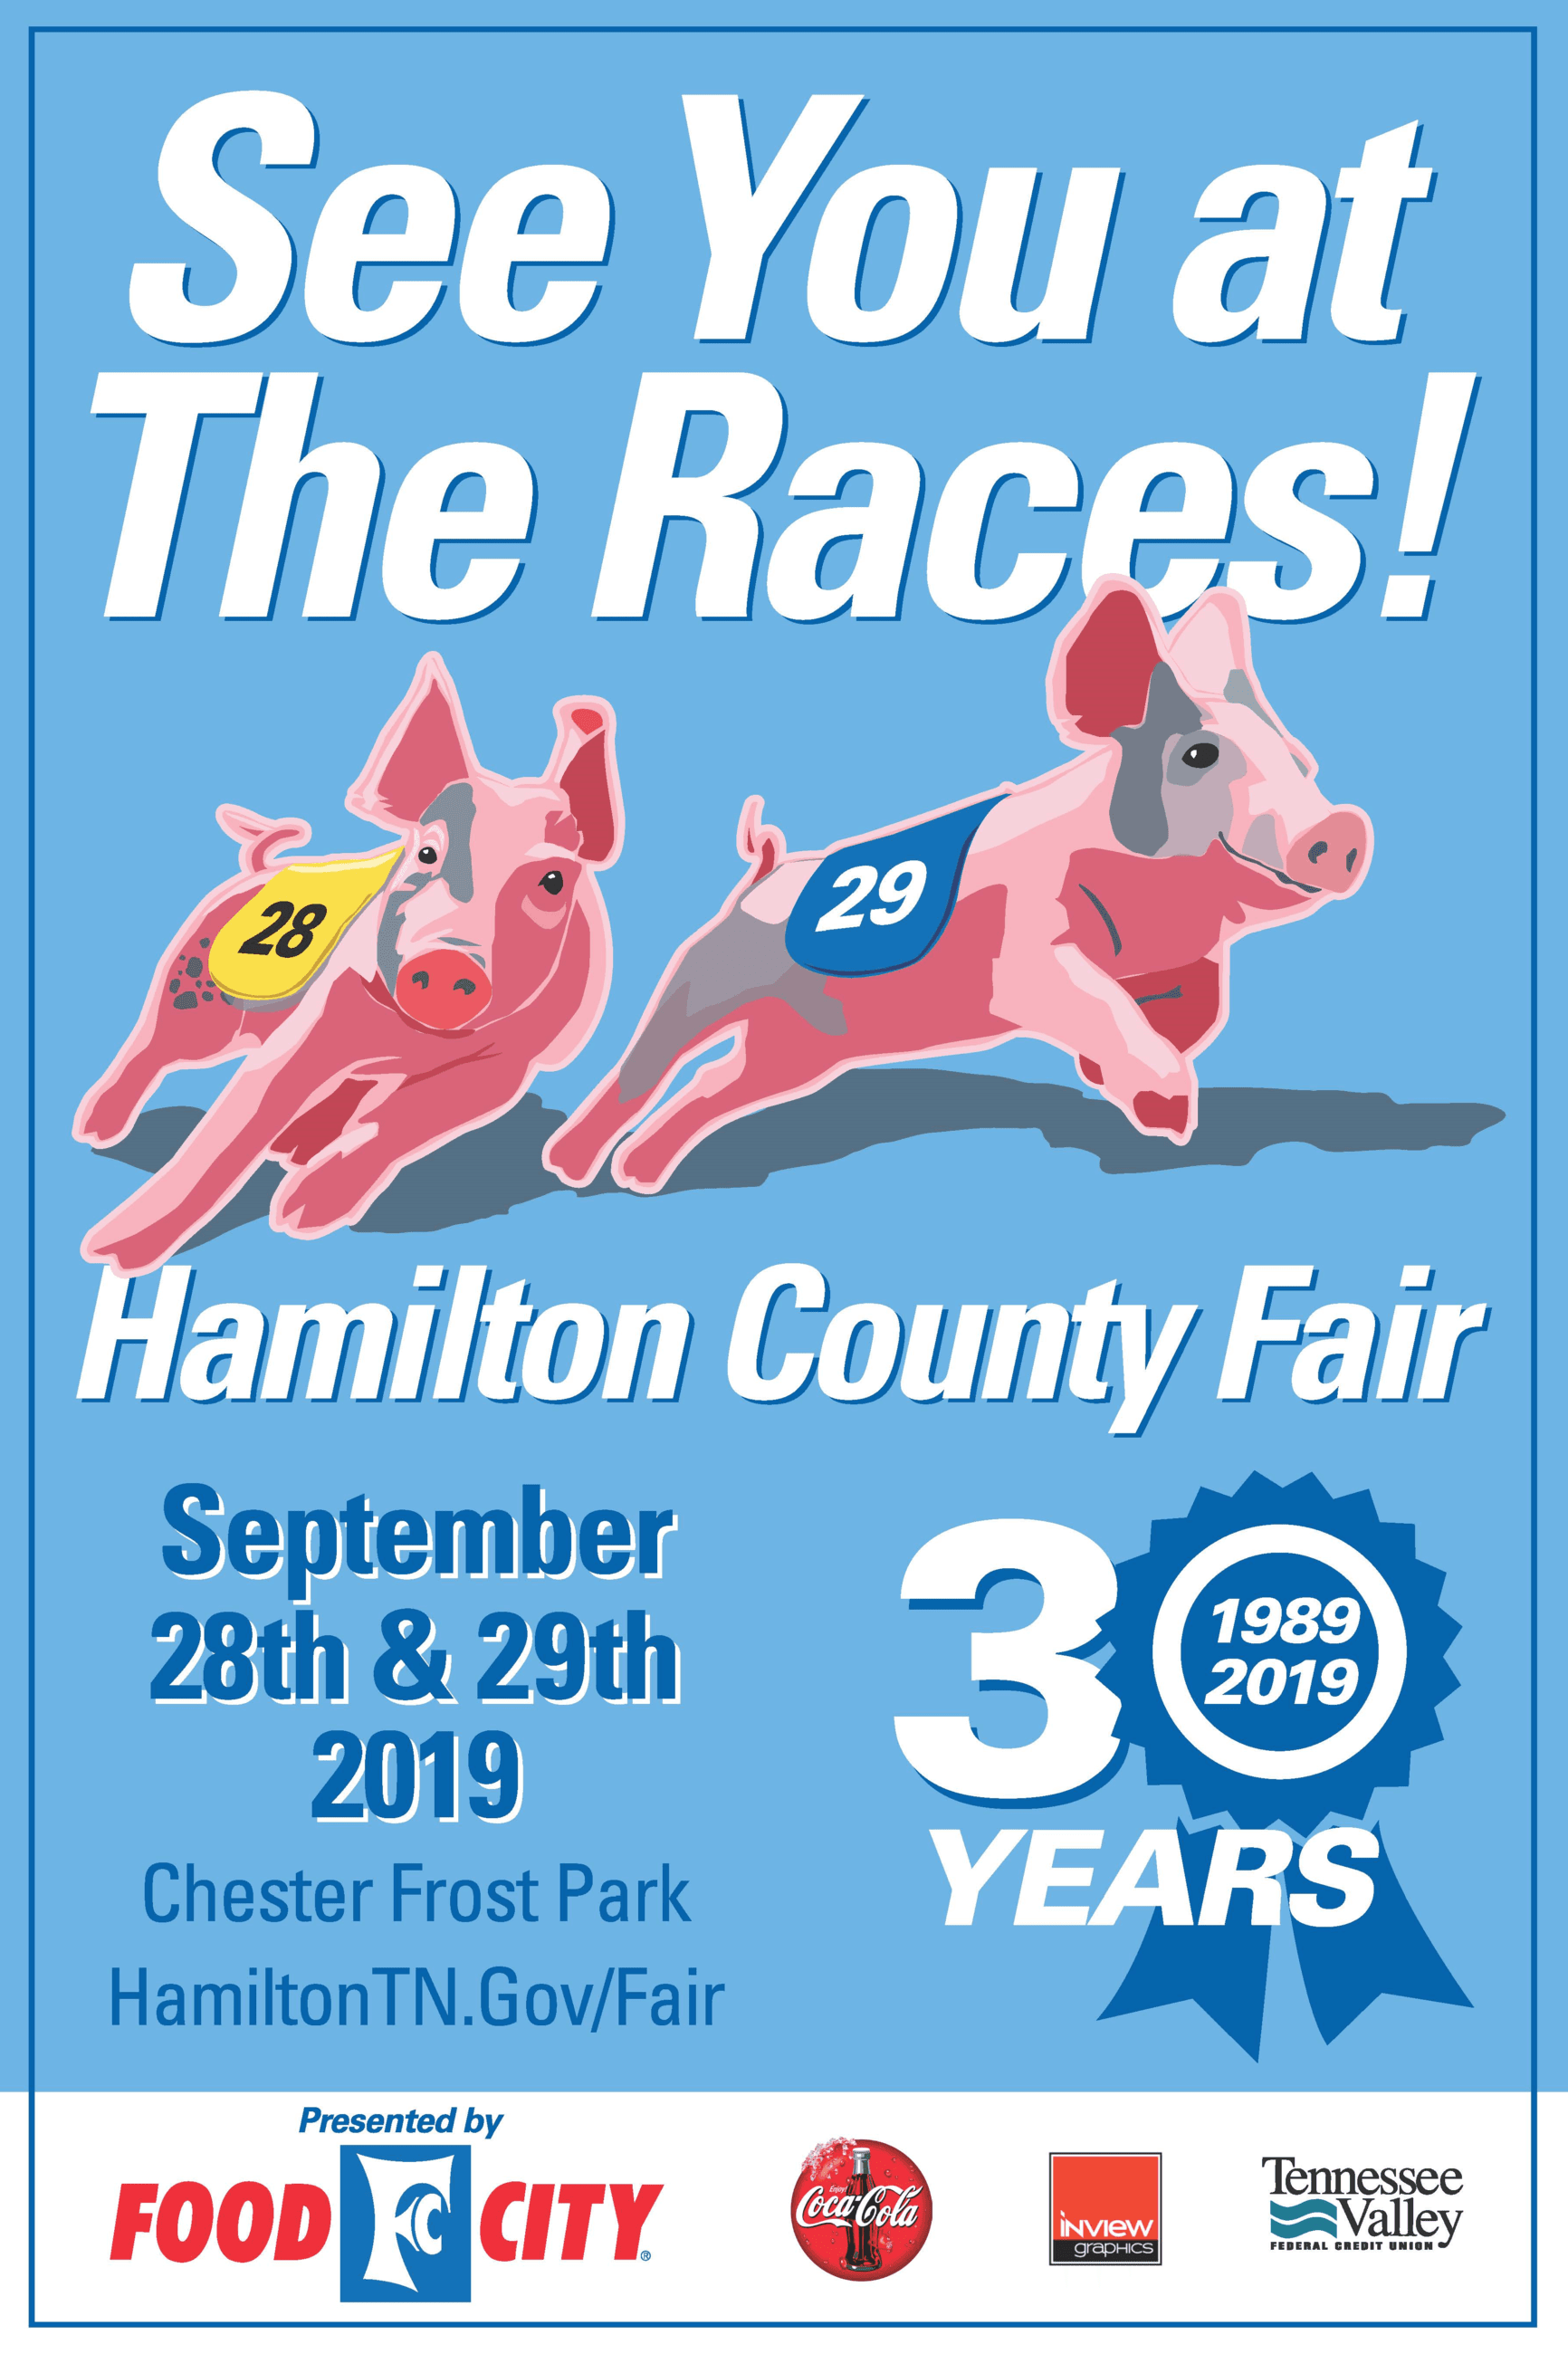 Hamilton Co. Fair 2019 Poster Image